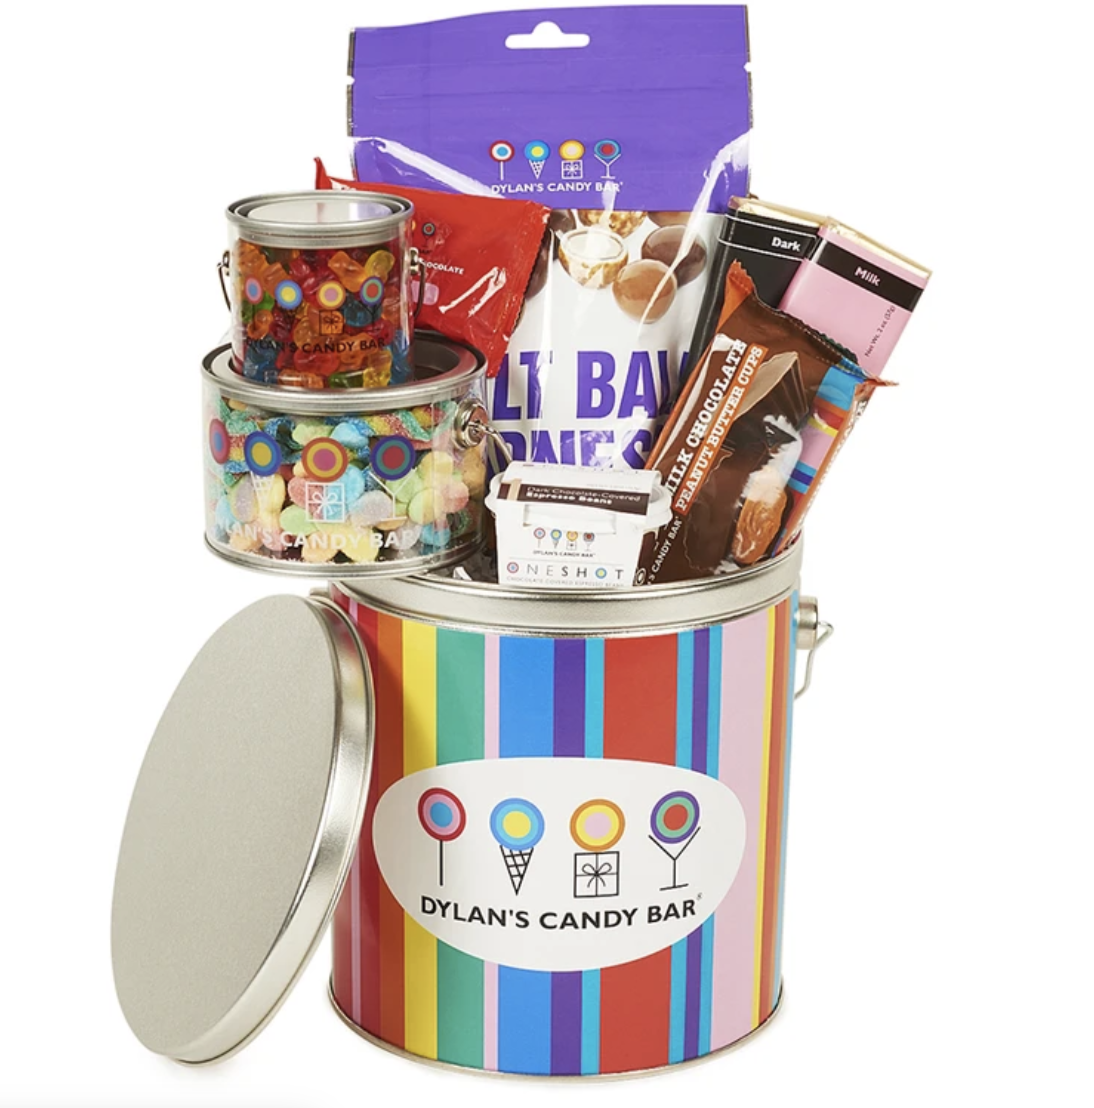 A rainbow bucket with the Dylan's Candy Bar logo full of candy and chocolate